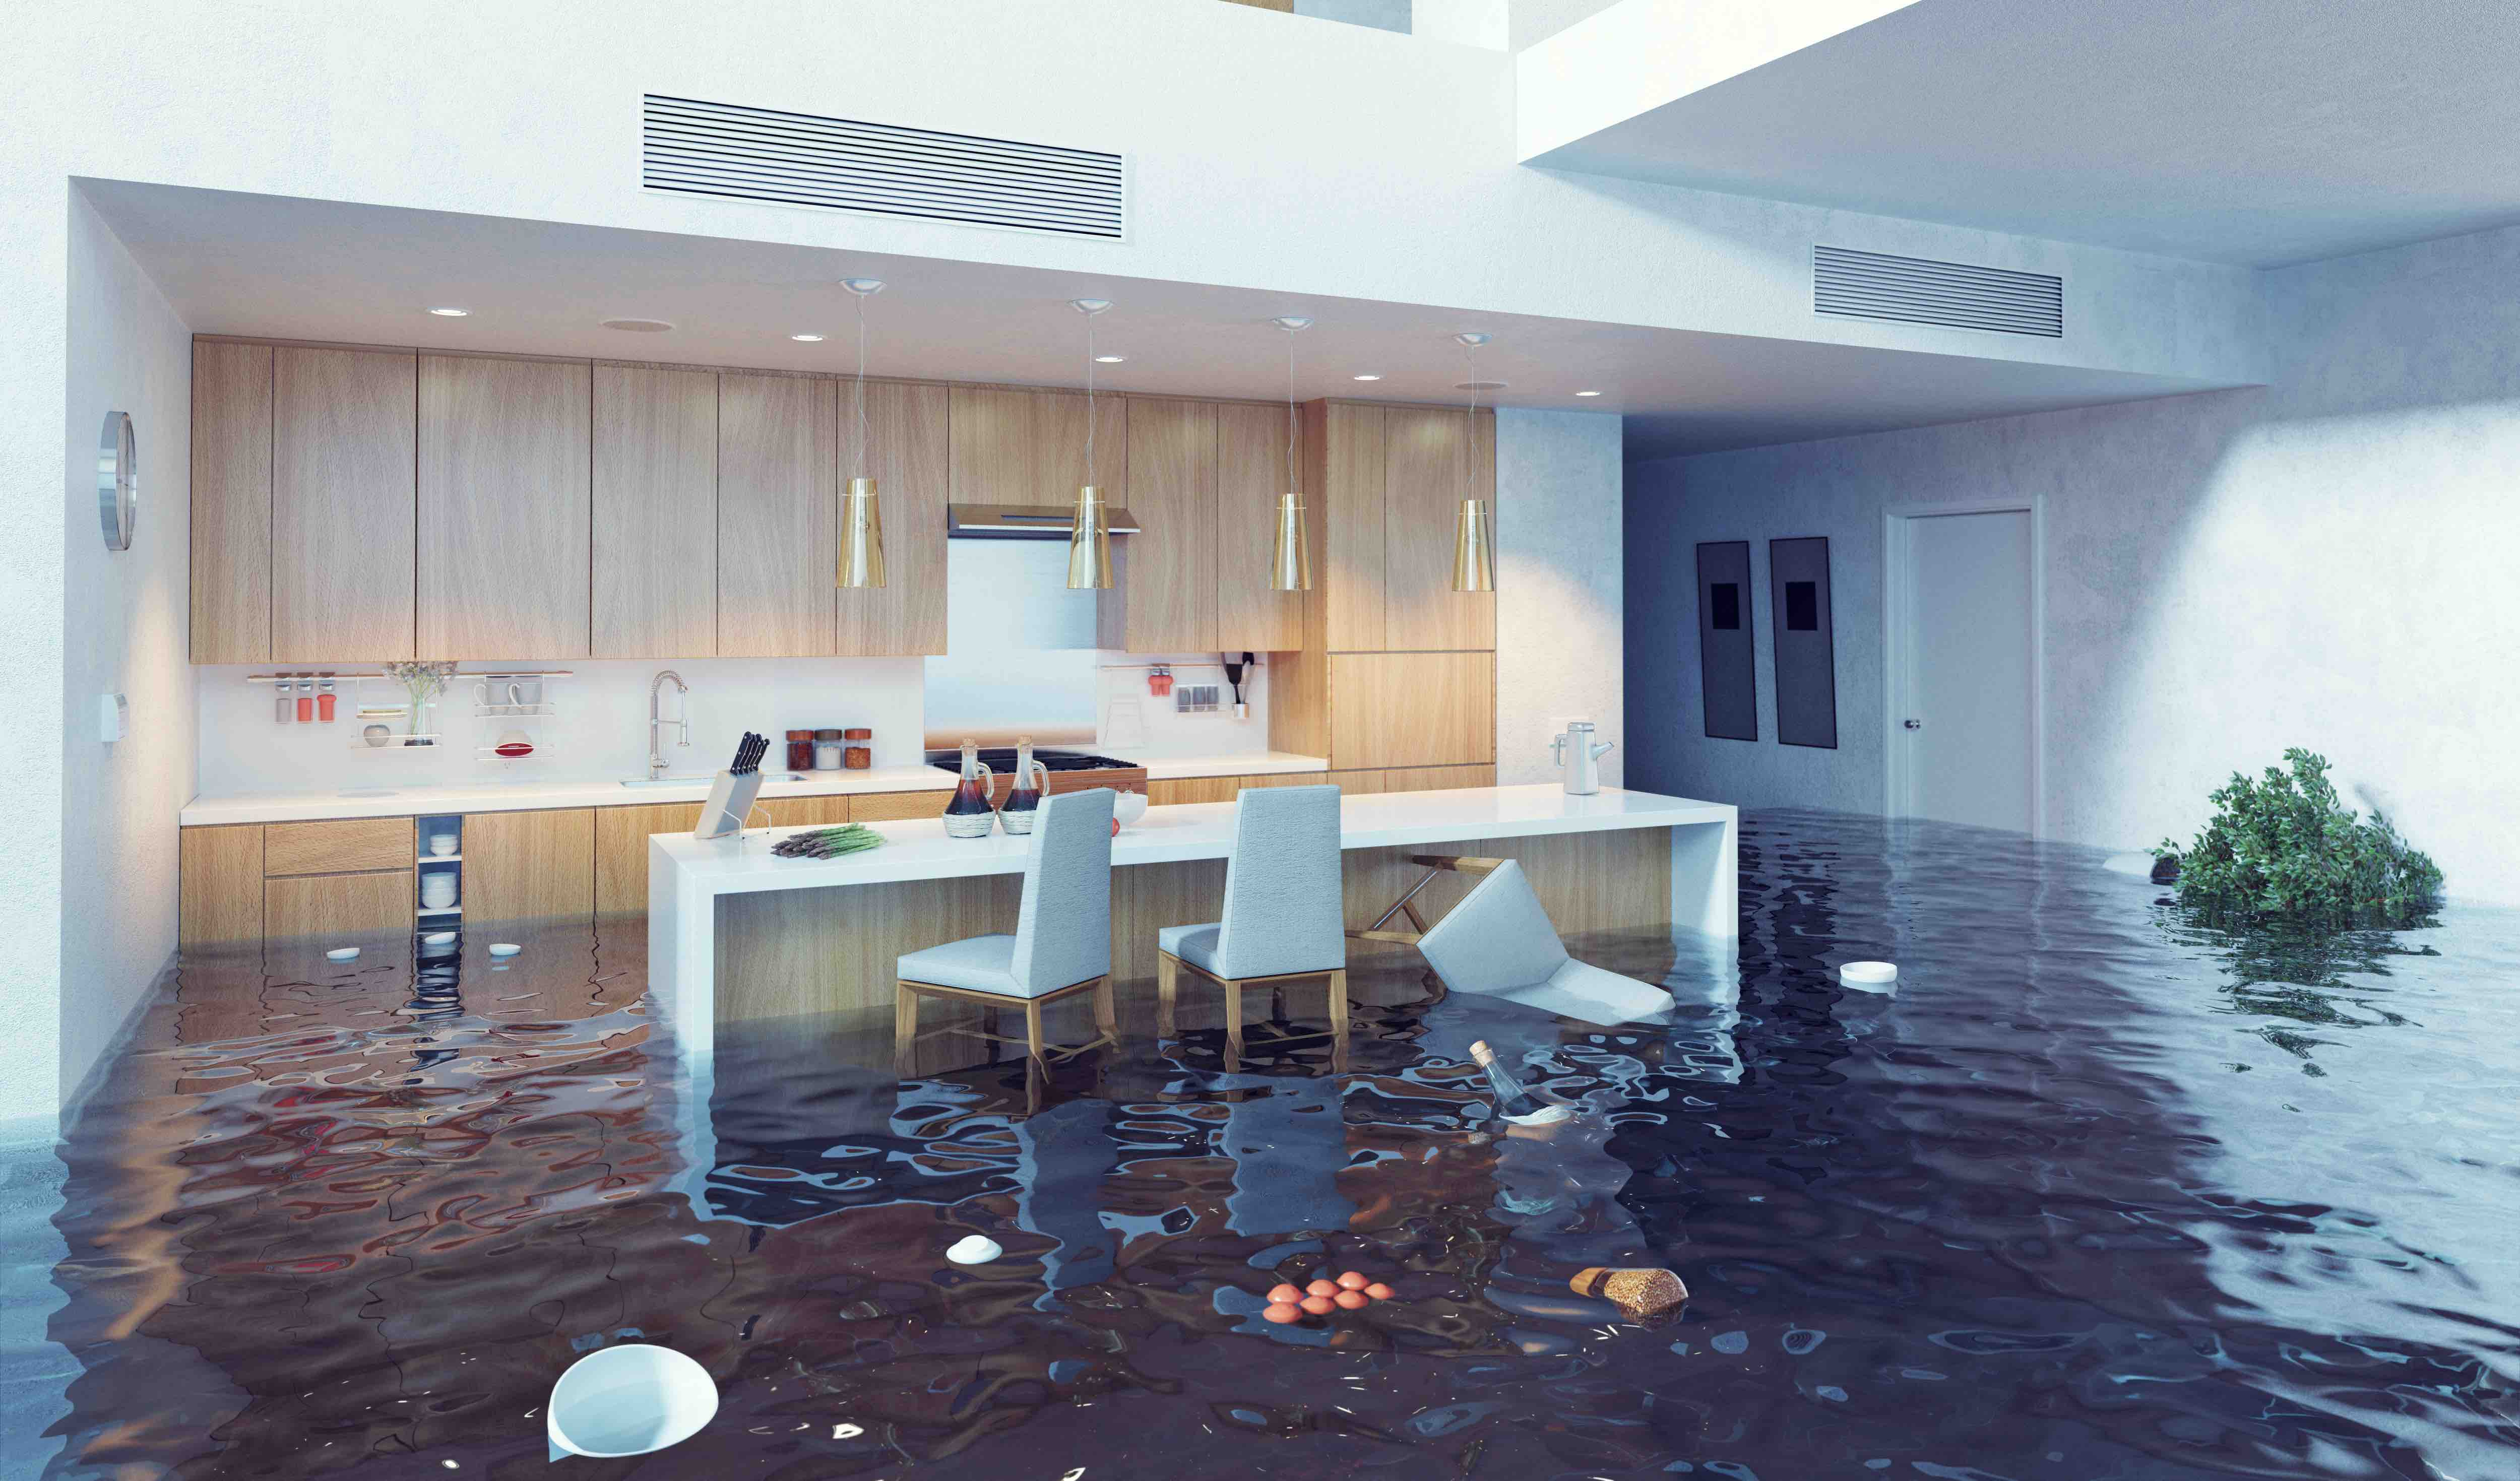 florida waterfront home with kitchen flooded